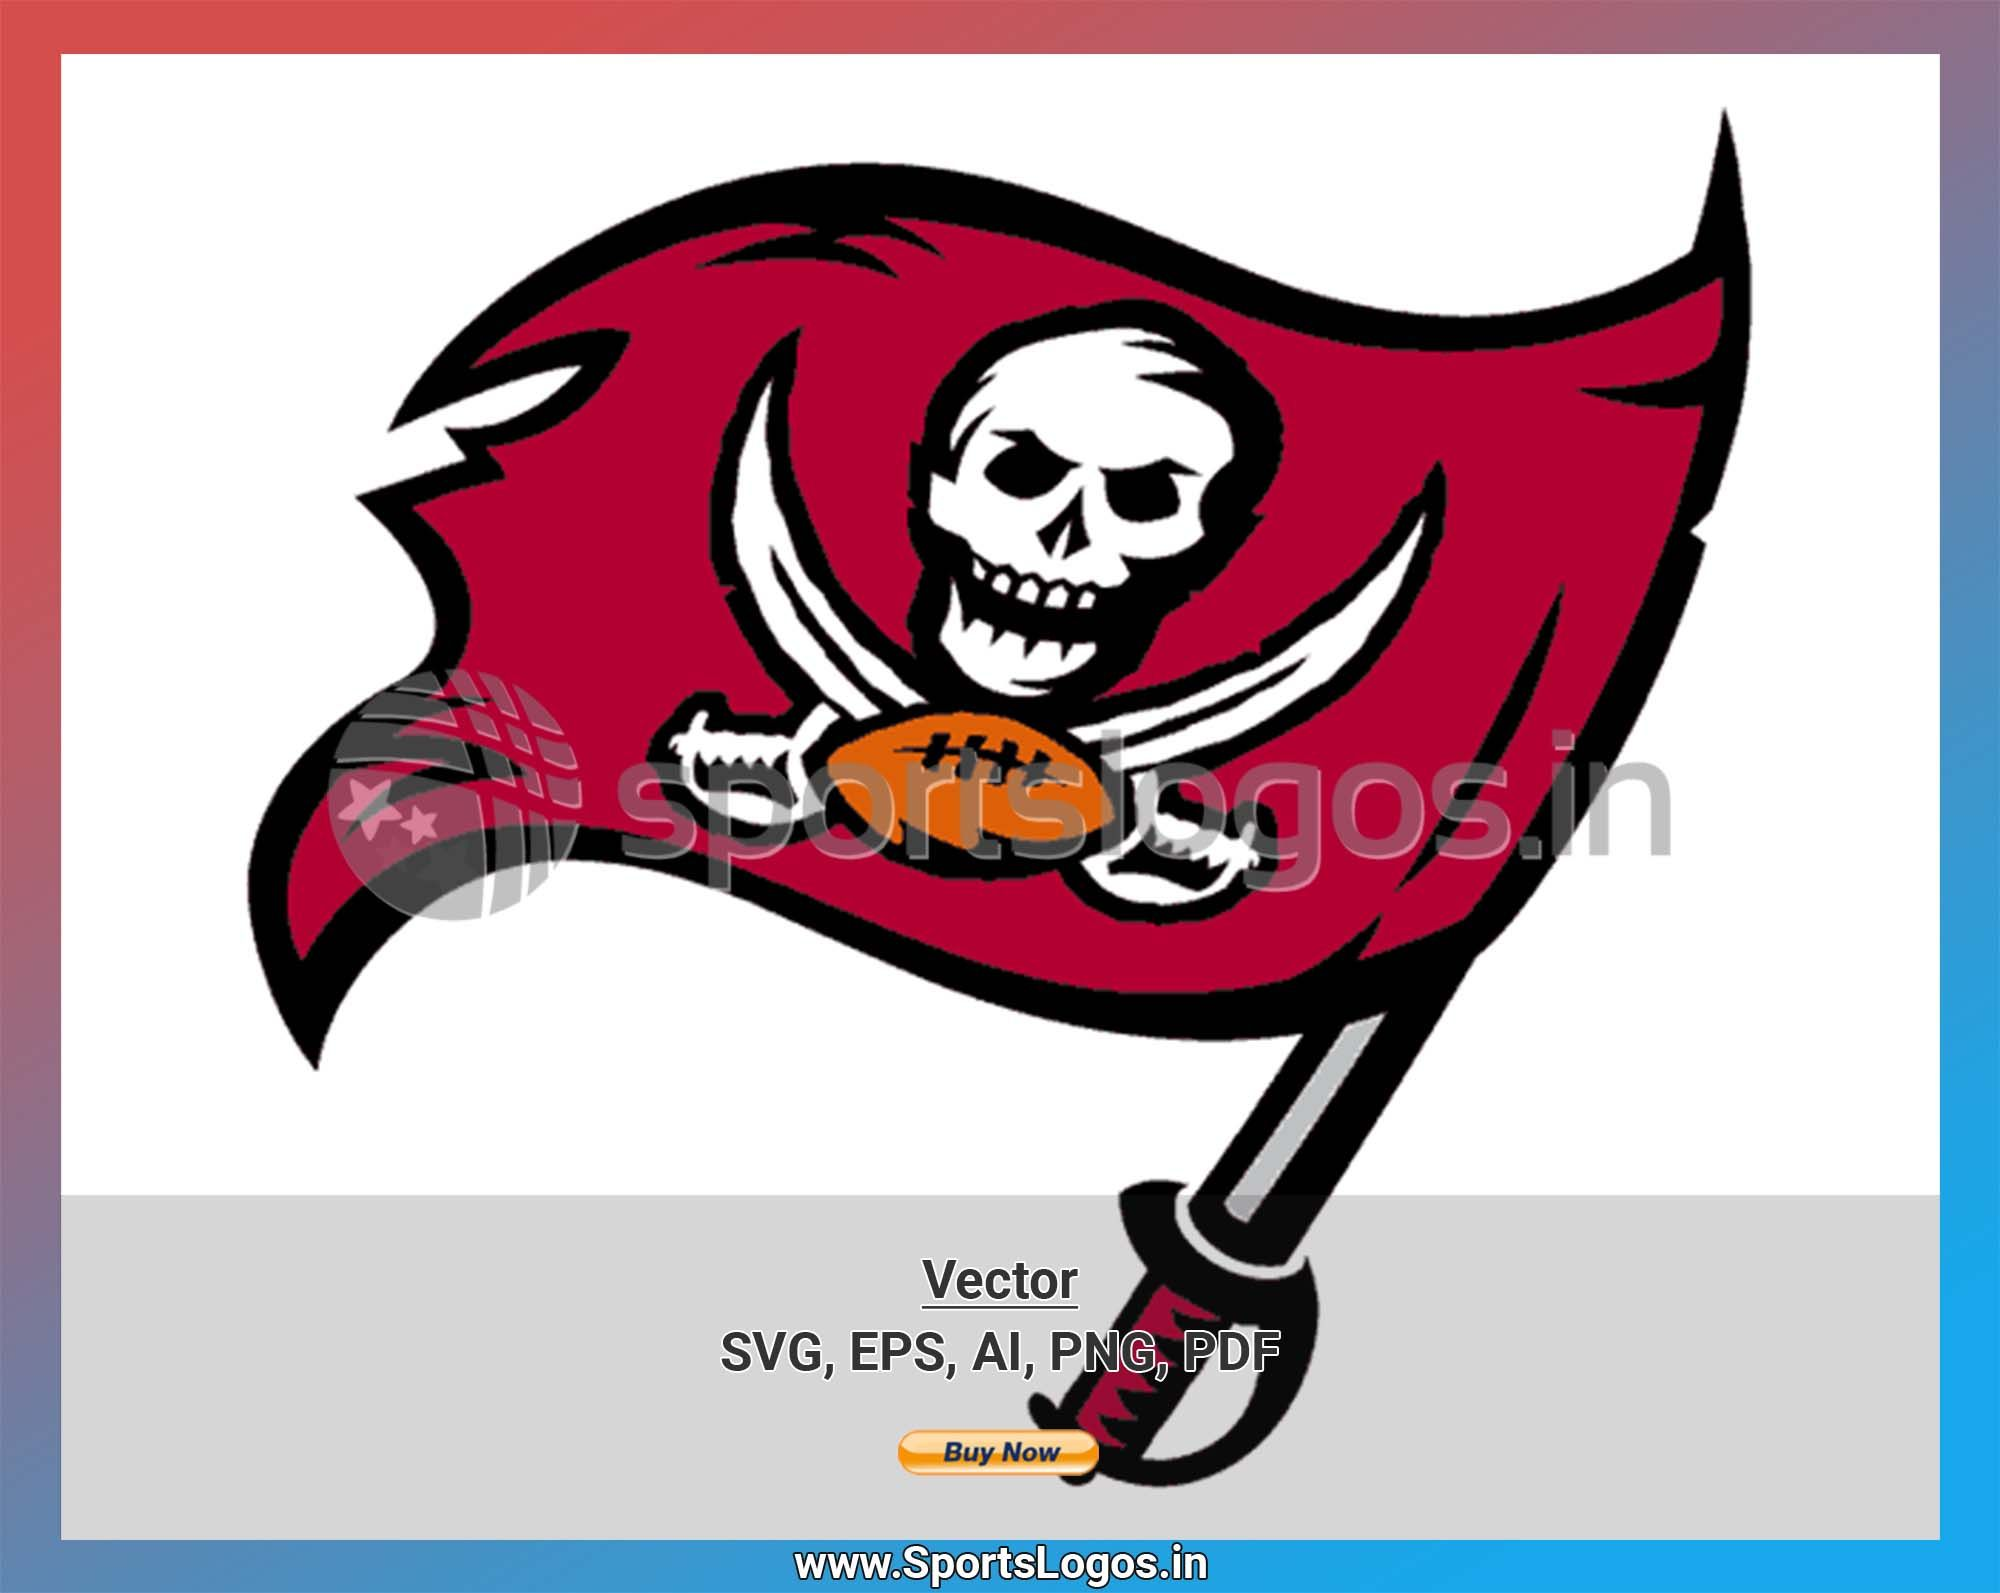 Tampa Bay Buccaneers Football Sports Vector Svg Logo In 5 Formats Spln004324 Sports Logos Embroidery Vector For Nfl Nba Nhl Mlb Milb And More In 2020